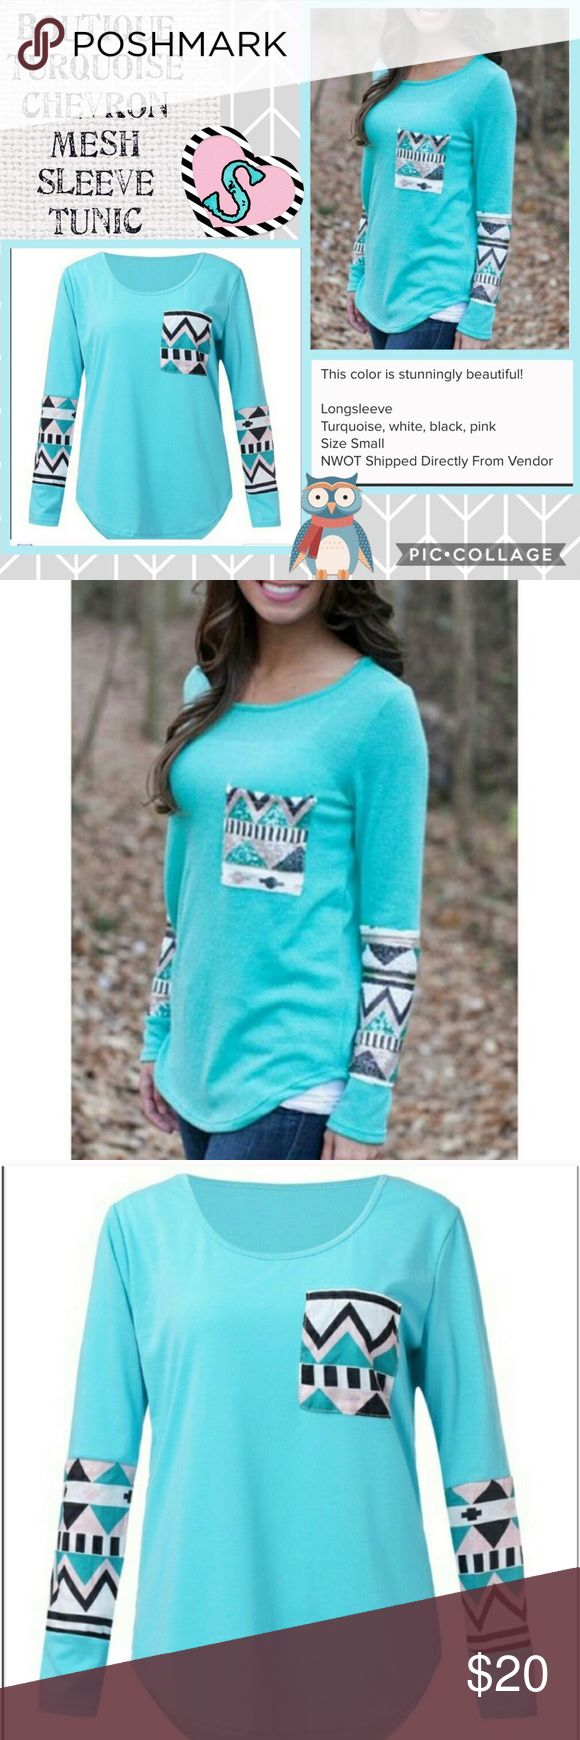 Turquoise Tunic with Chevron Pocket & Mesh Sleeve Brand new from boutique distribution warehouse with out tags. Round neck casual long sleeve Tunic is a lovely Turquoise color, and features Chevron mesh accents on the sleeves, and pocket.  The accent colors are black, white, Turquoise and dusty pink. Boutique Tops Tees - Long Sleeve